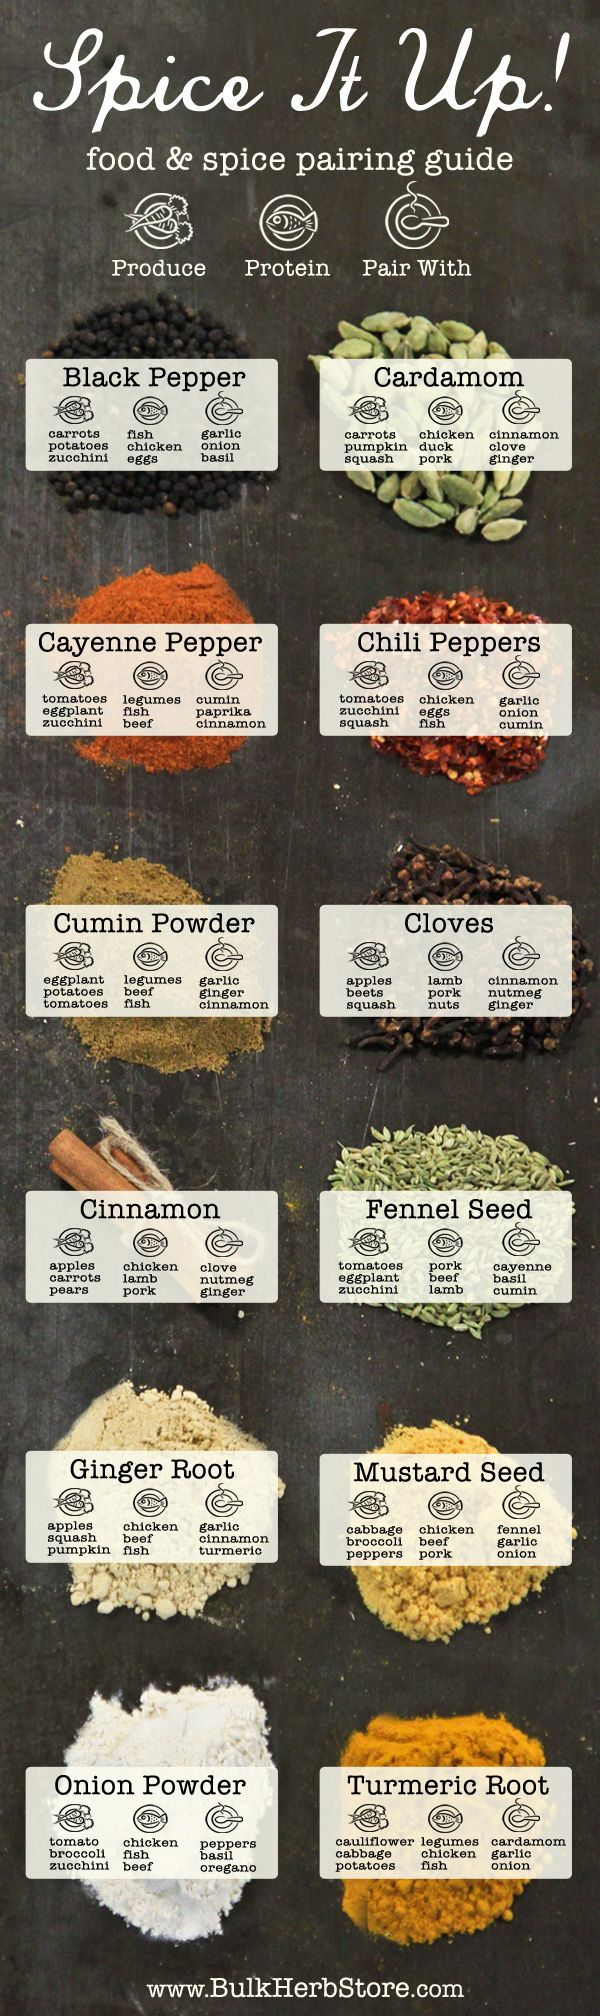 Spice This Season Up with the Food And Spice Guida agli accoppiamenti Infographic &quot;width =&quot; 600 &quot;height =&quot; 2016 &quot;/&gt;</a></p><p class=